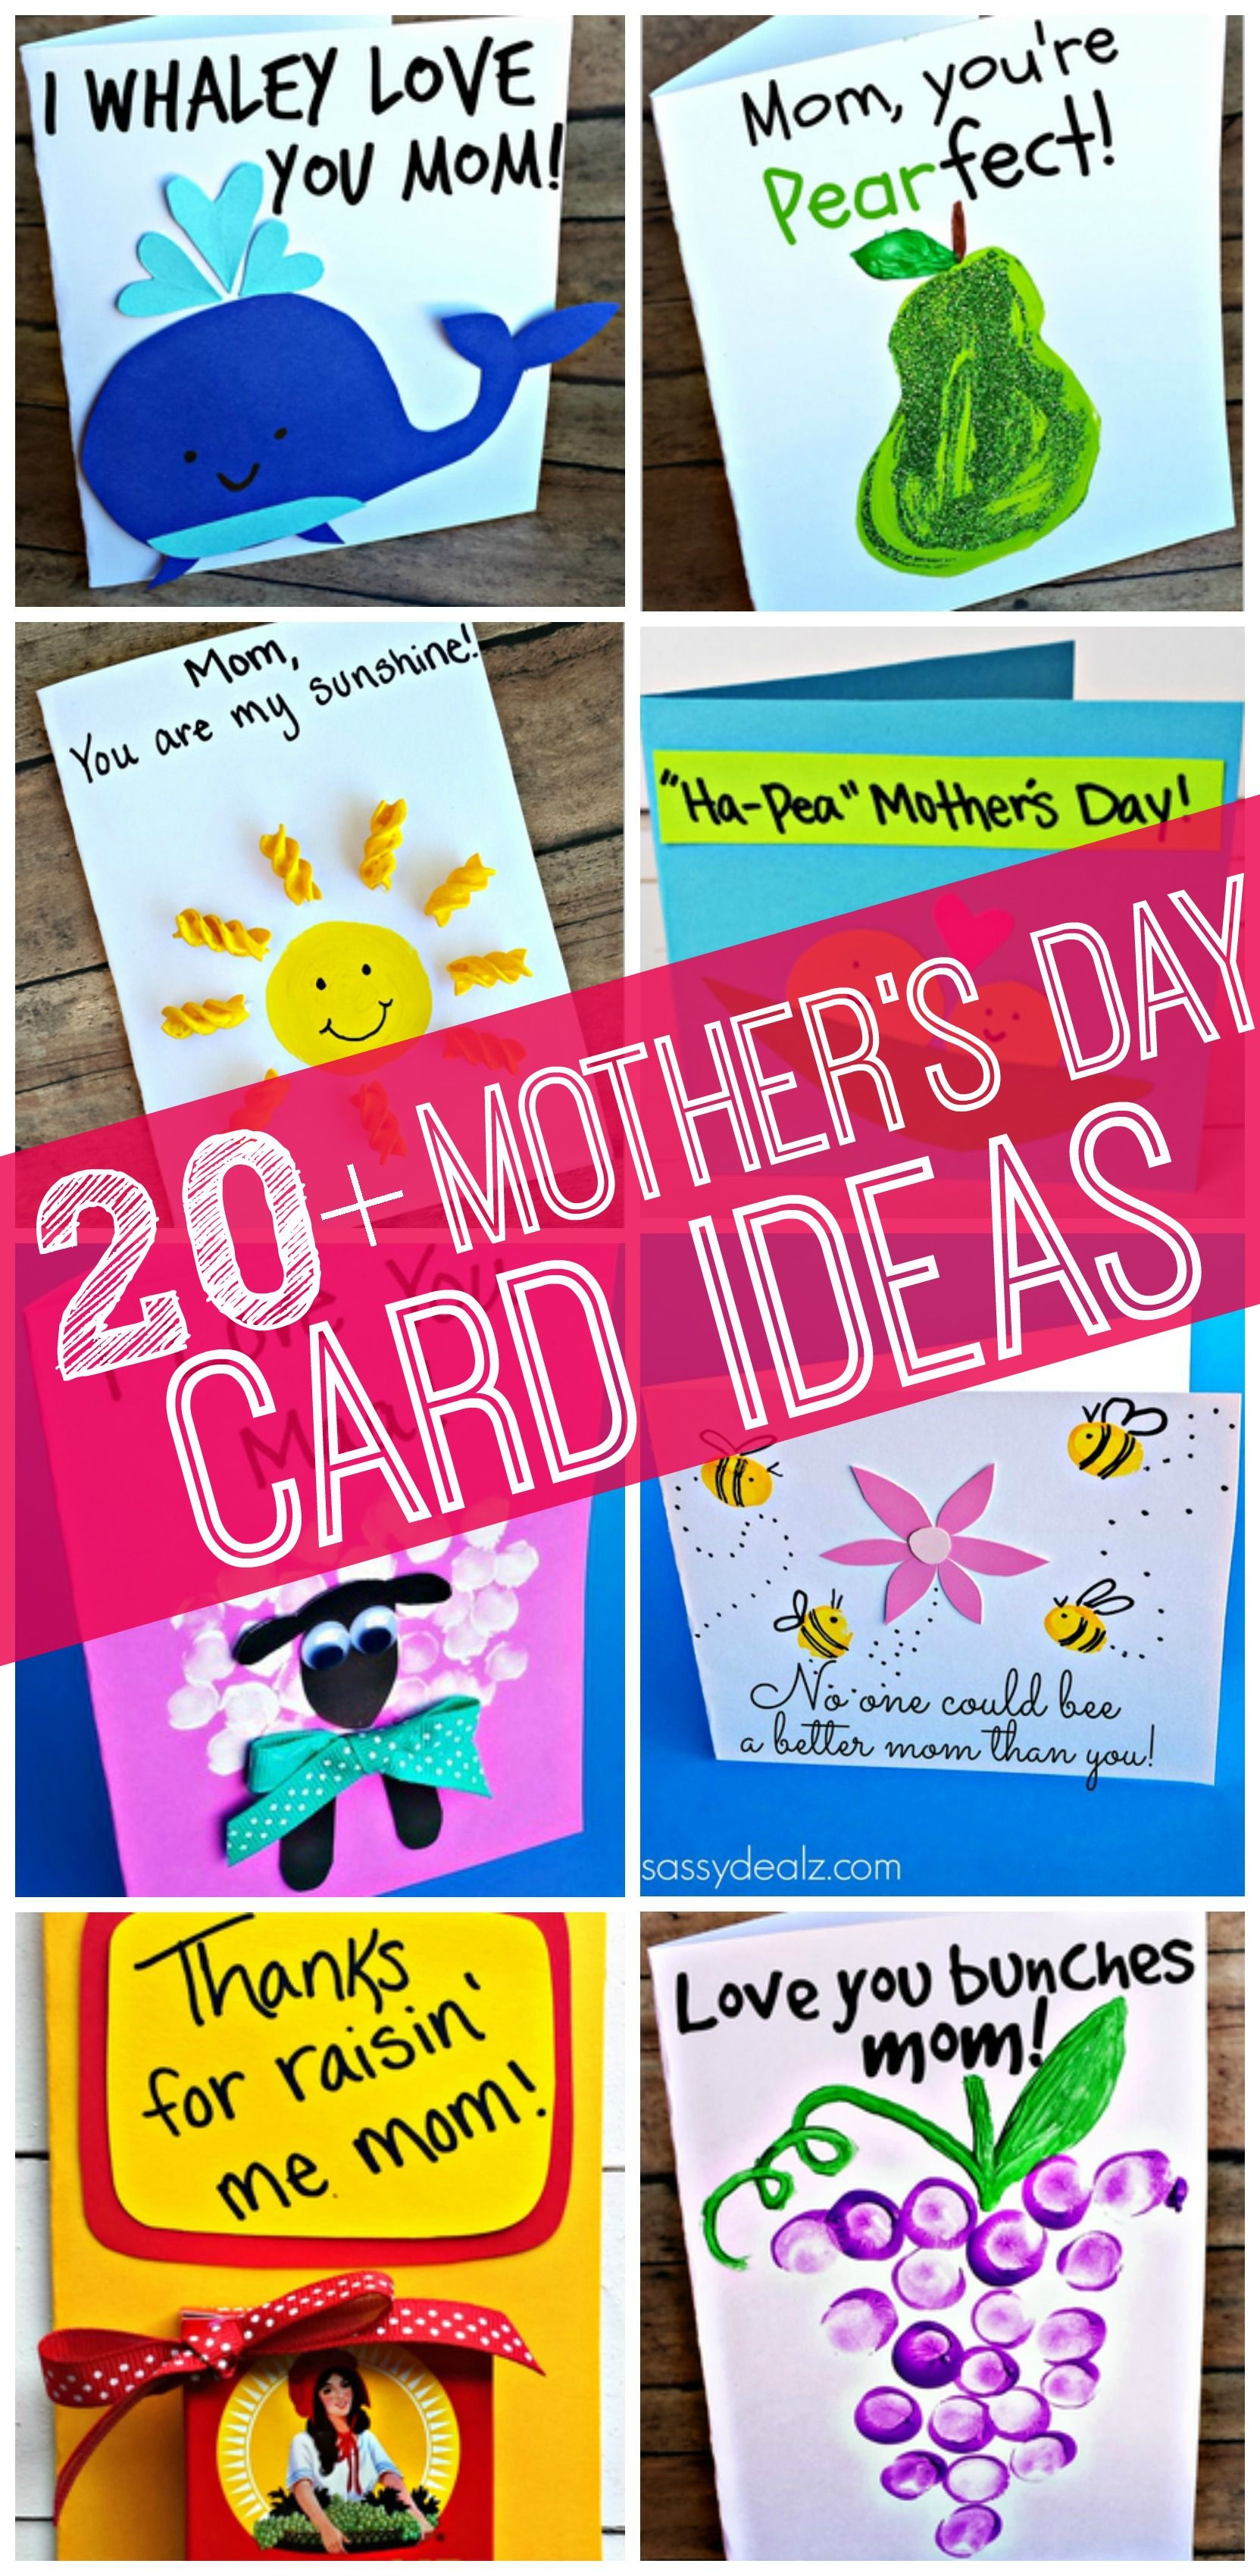 Pin by Ingrid Wold on Gift ideas | Pinterest | Mothers day crafts ...